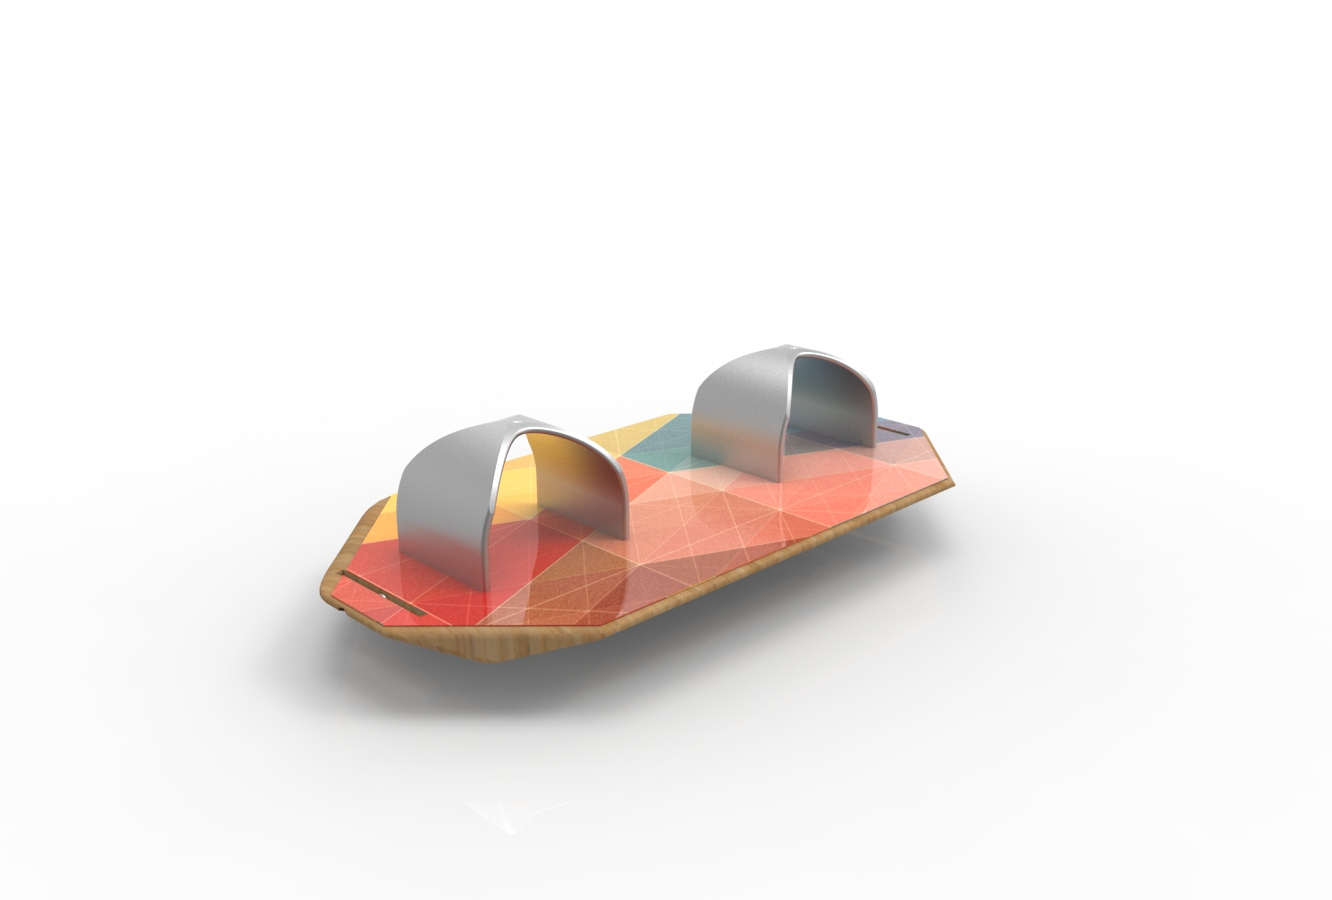 Geometric Stirruped Balance Board Concept